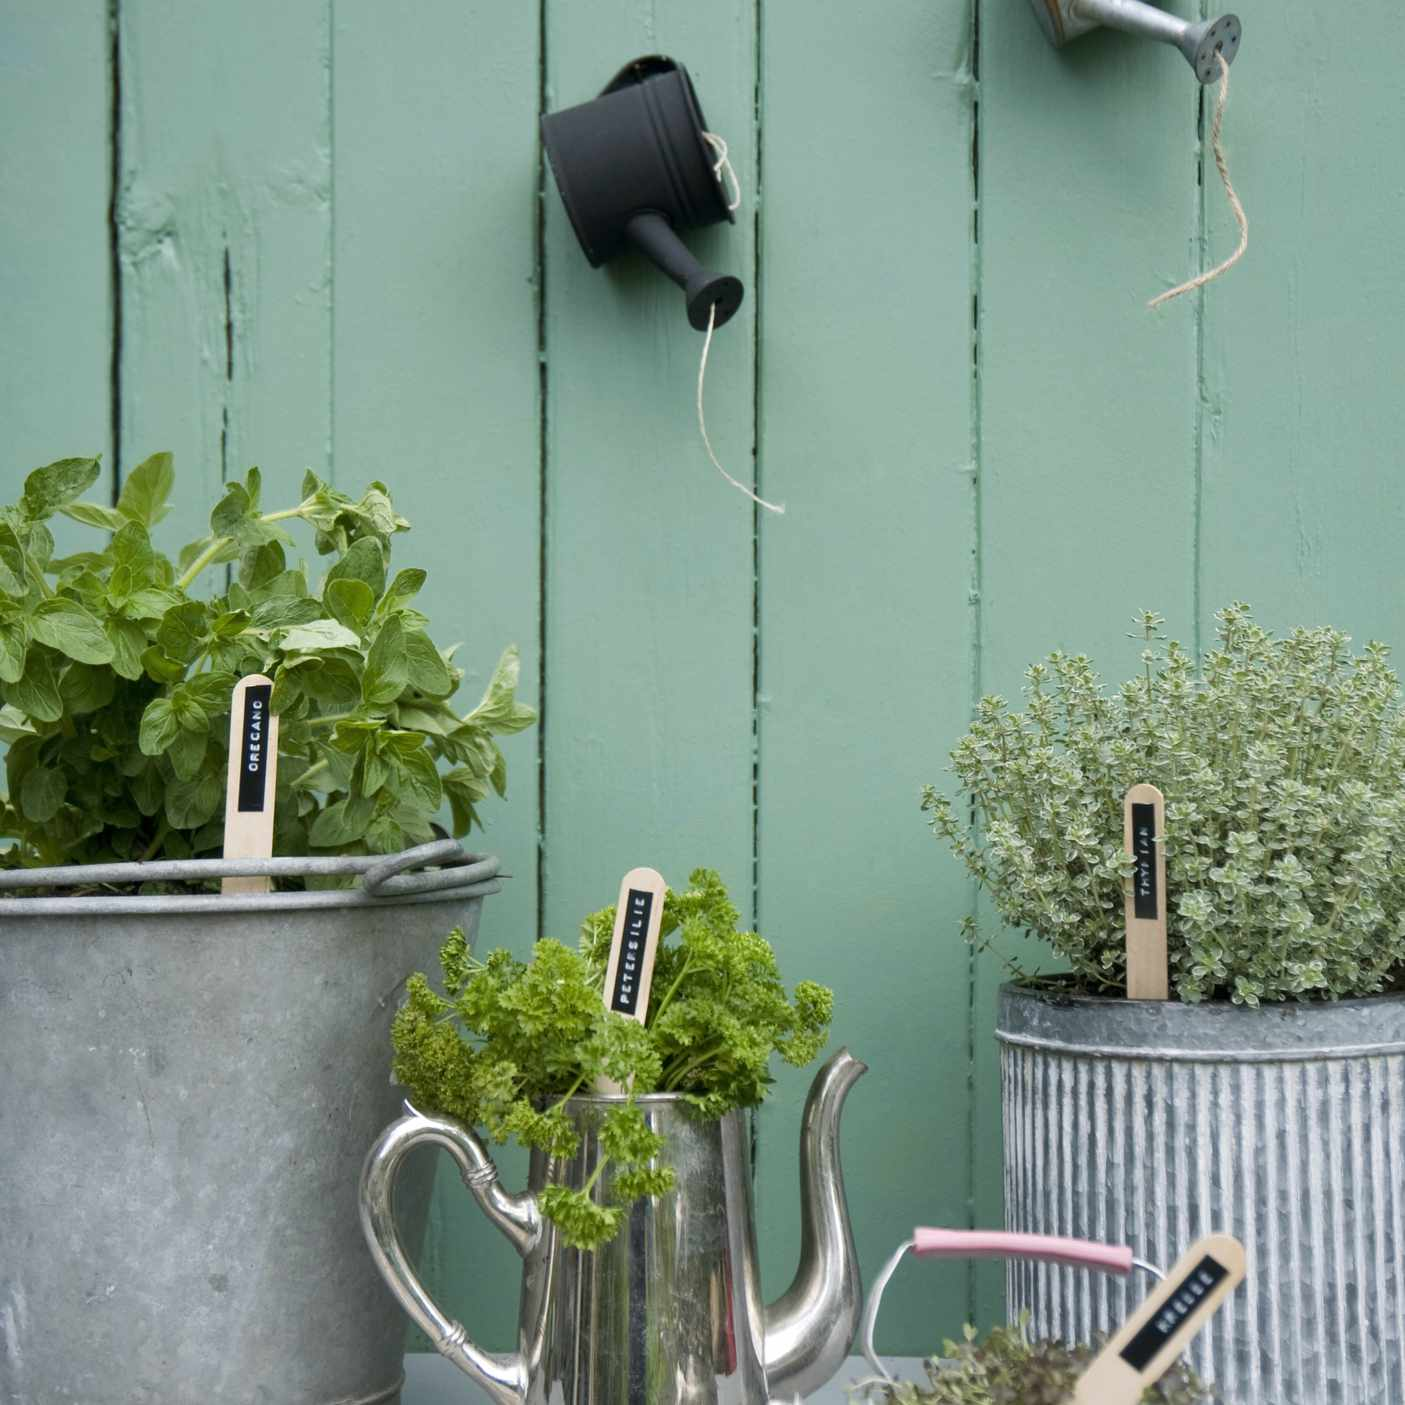 Metal planters and teapot planters filled with herbs against a light green wall.